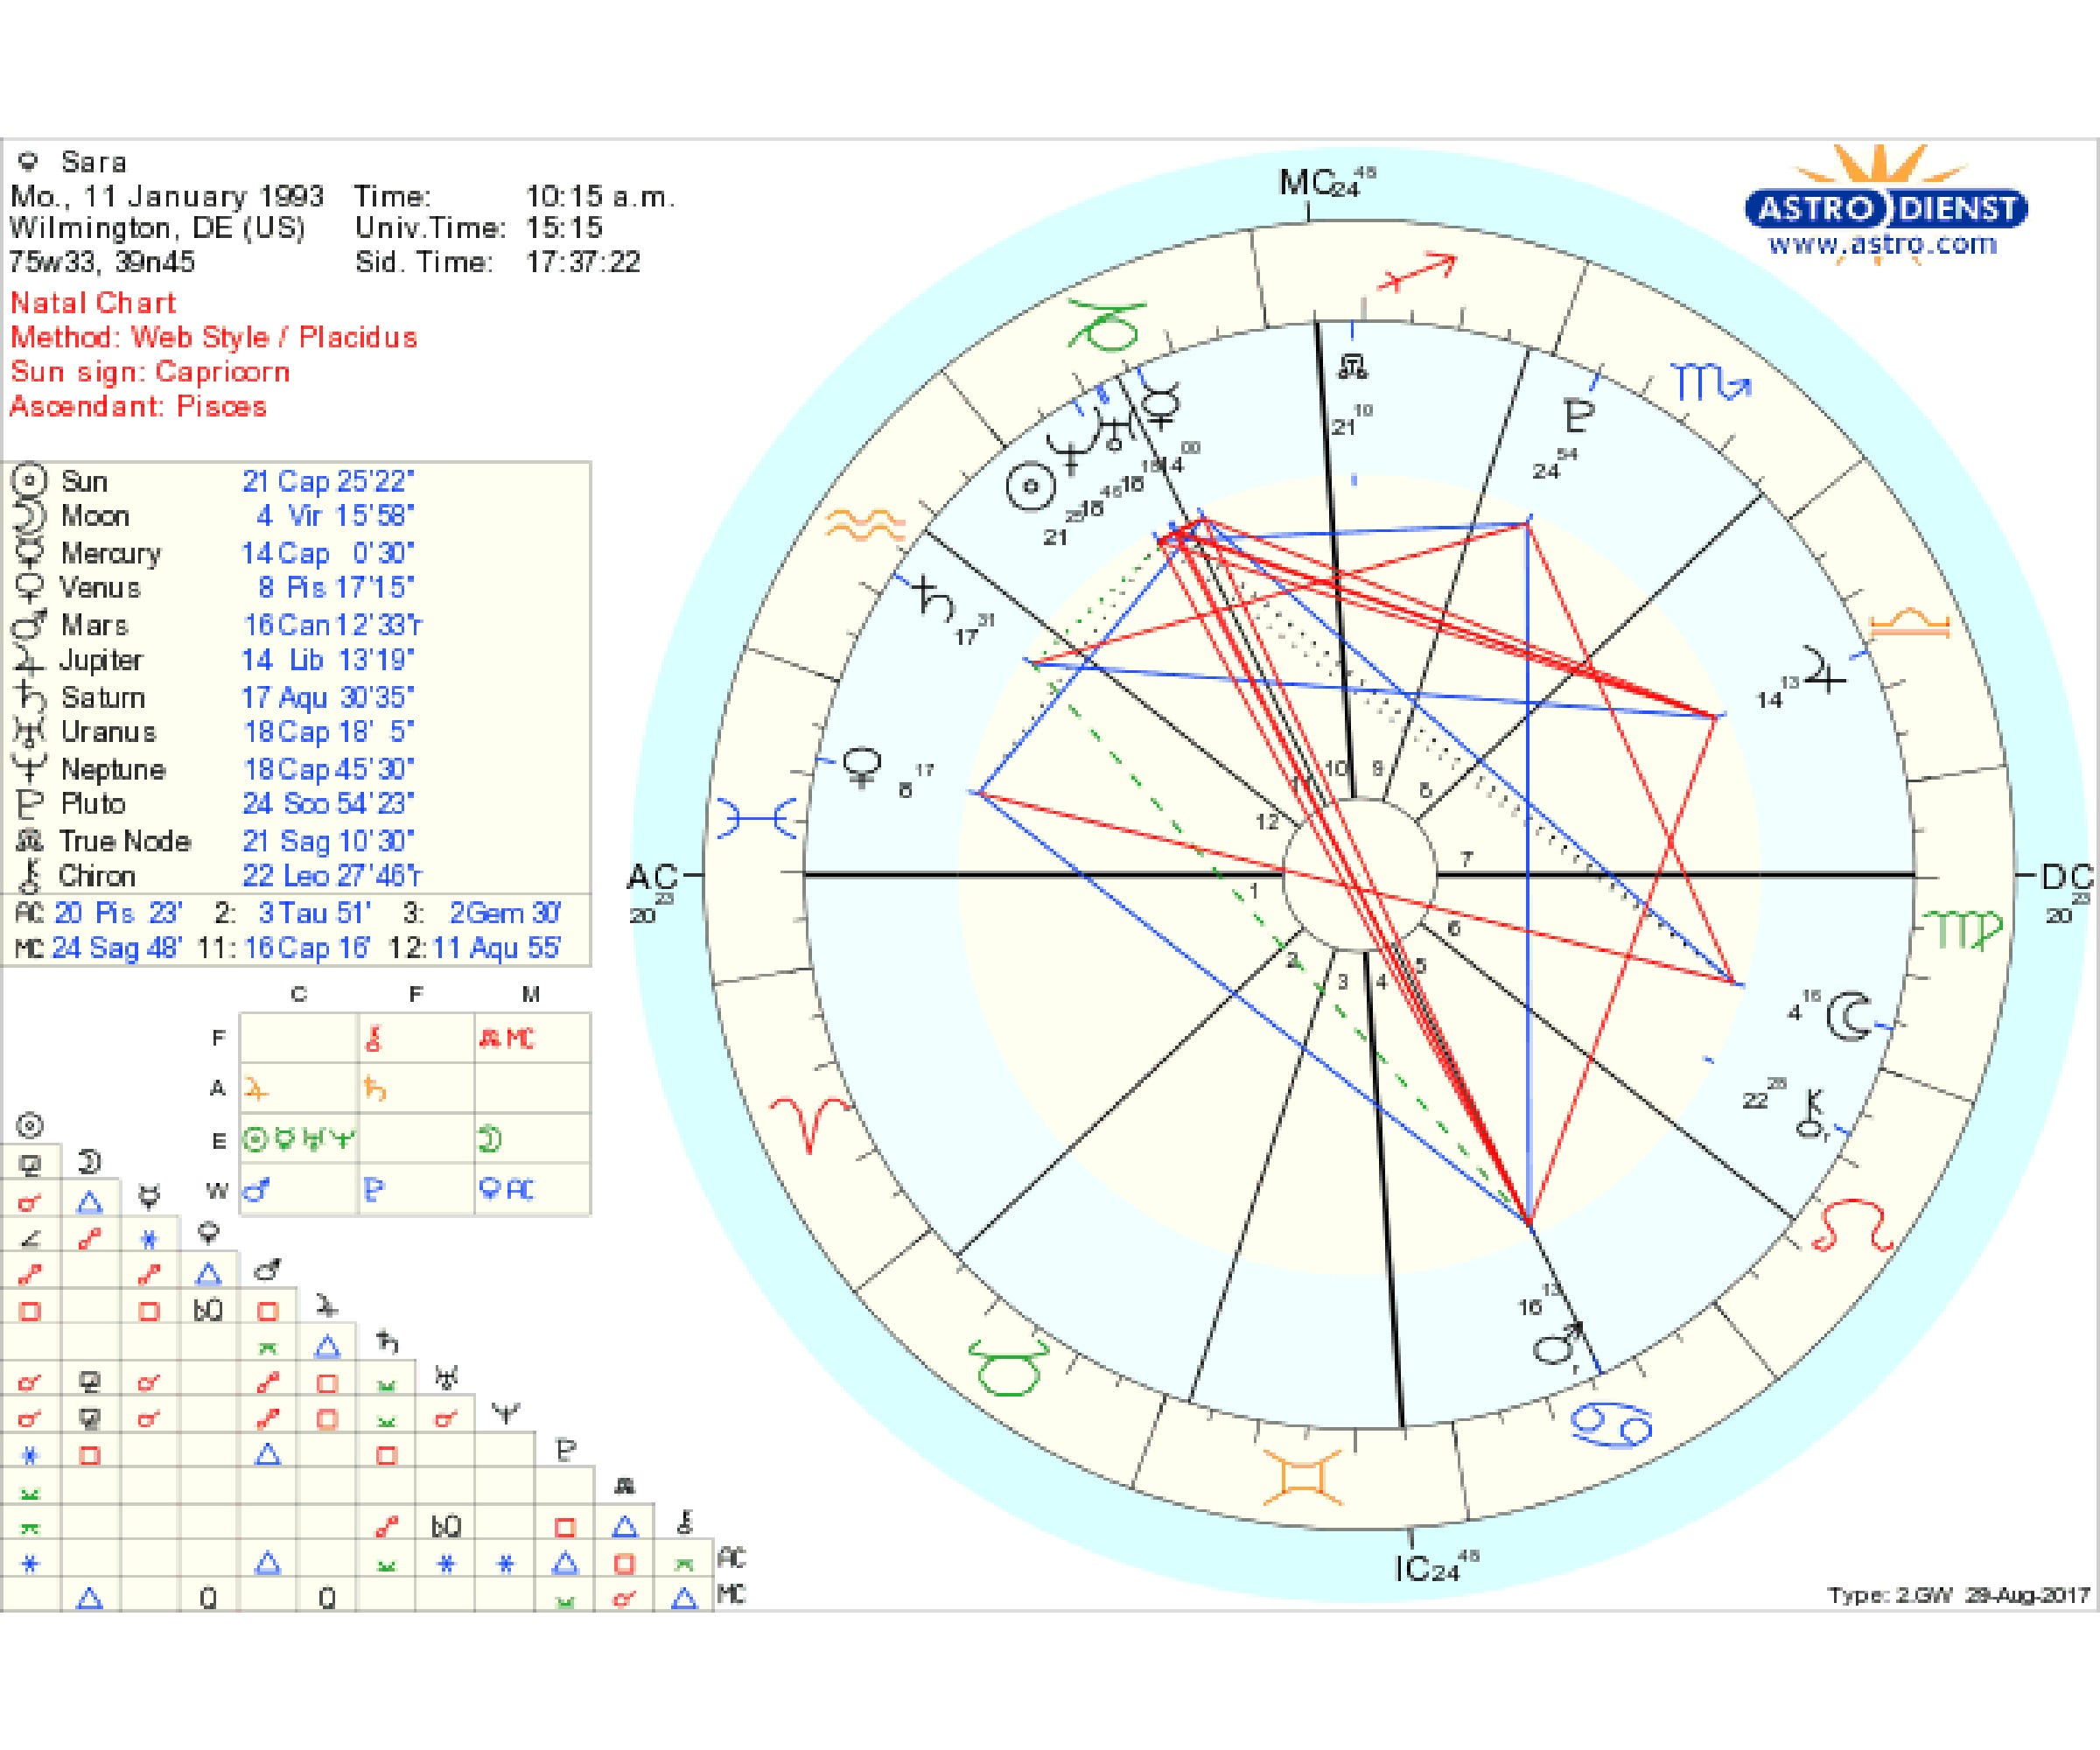 Professional astrologers read my natal birth chart nvjuhfo Image collections